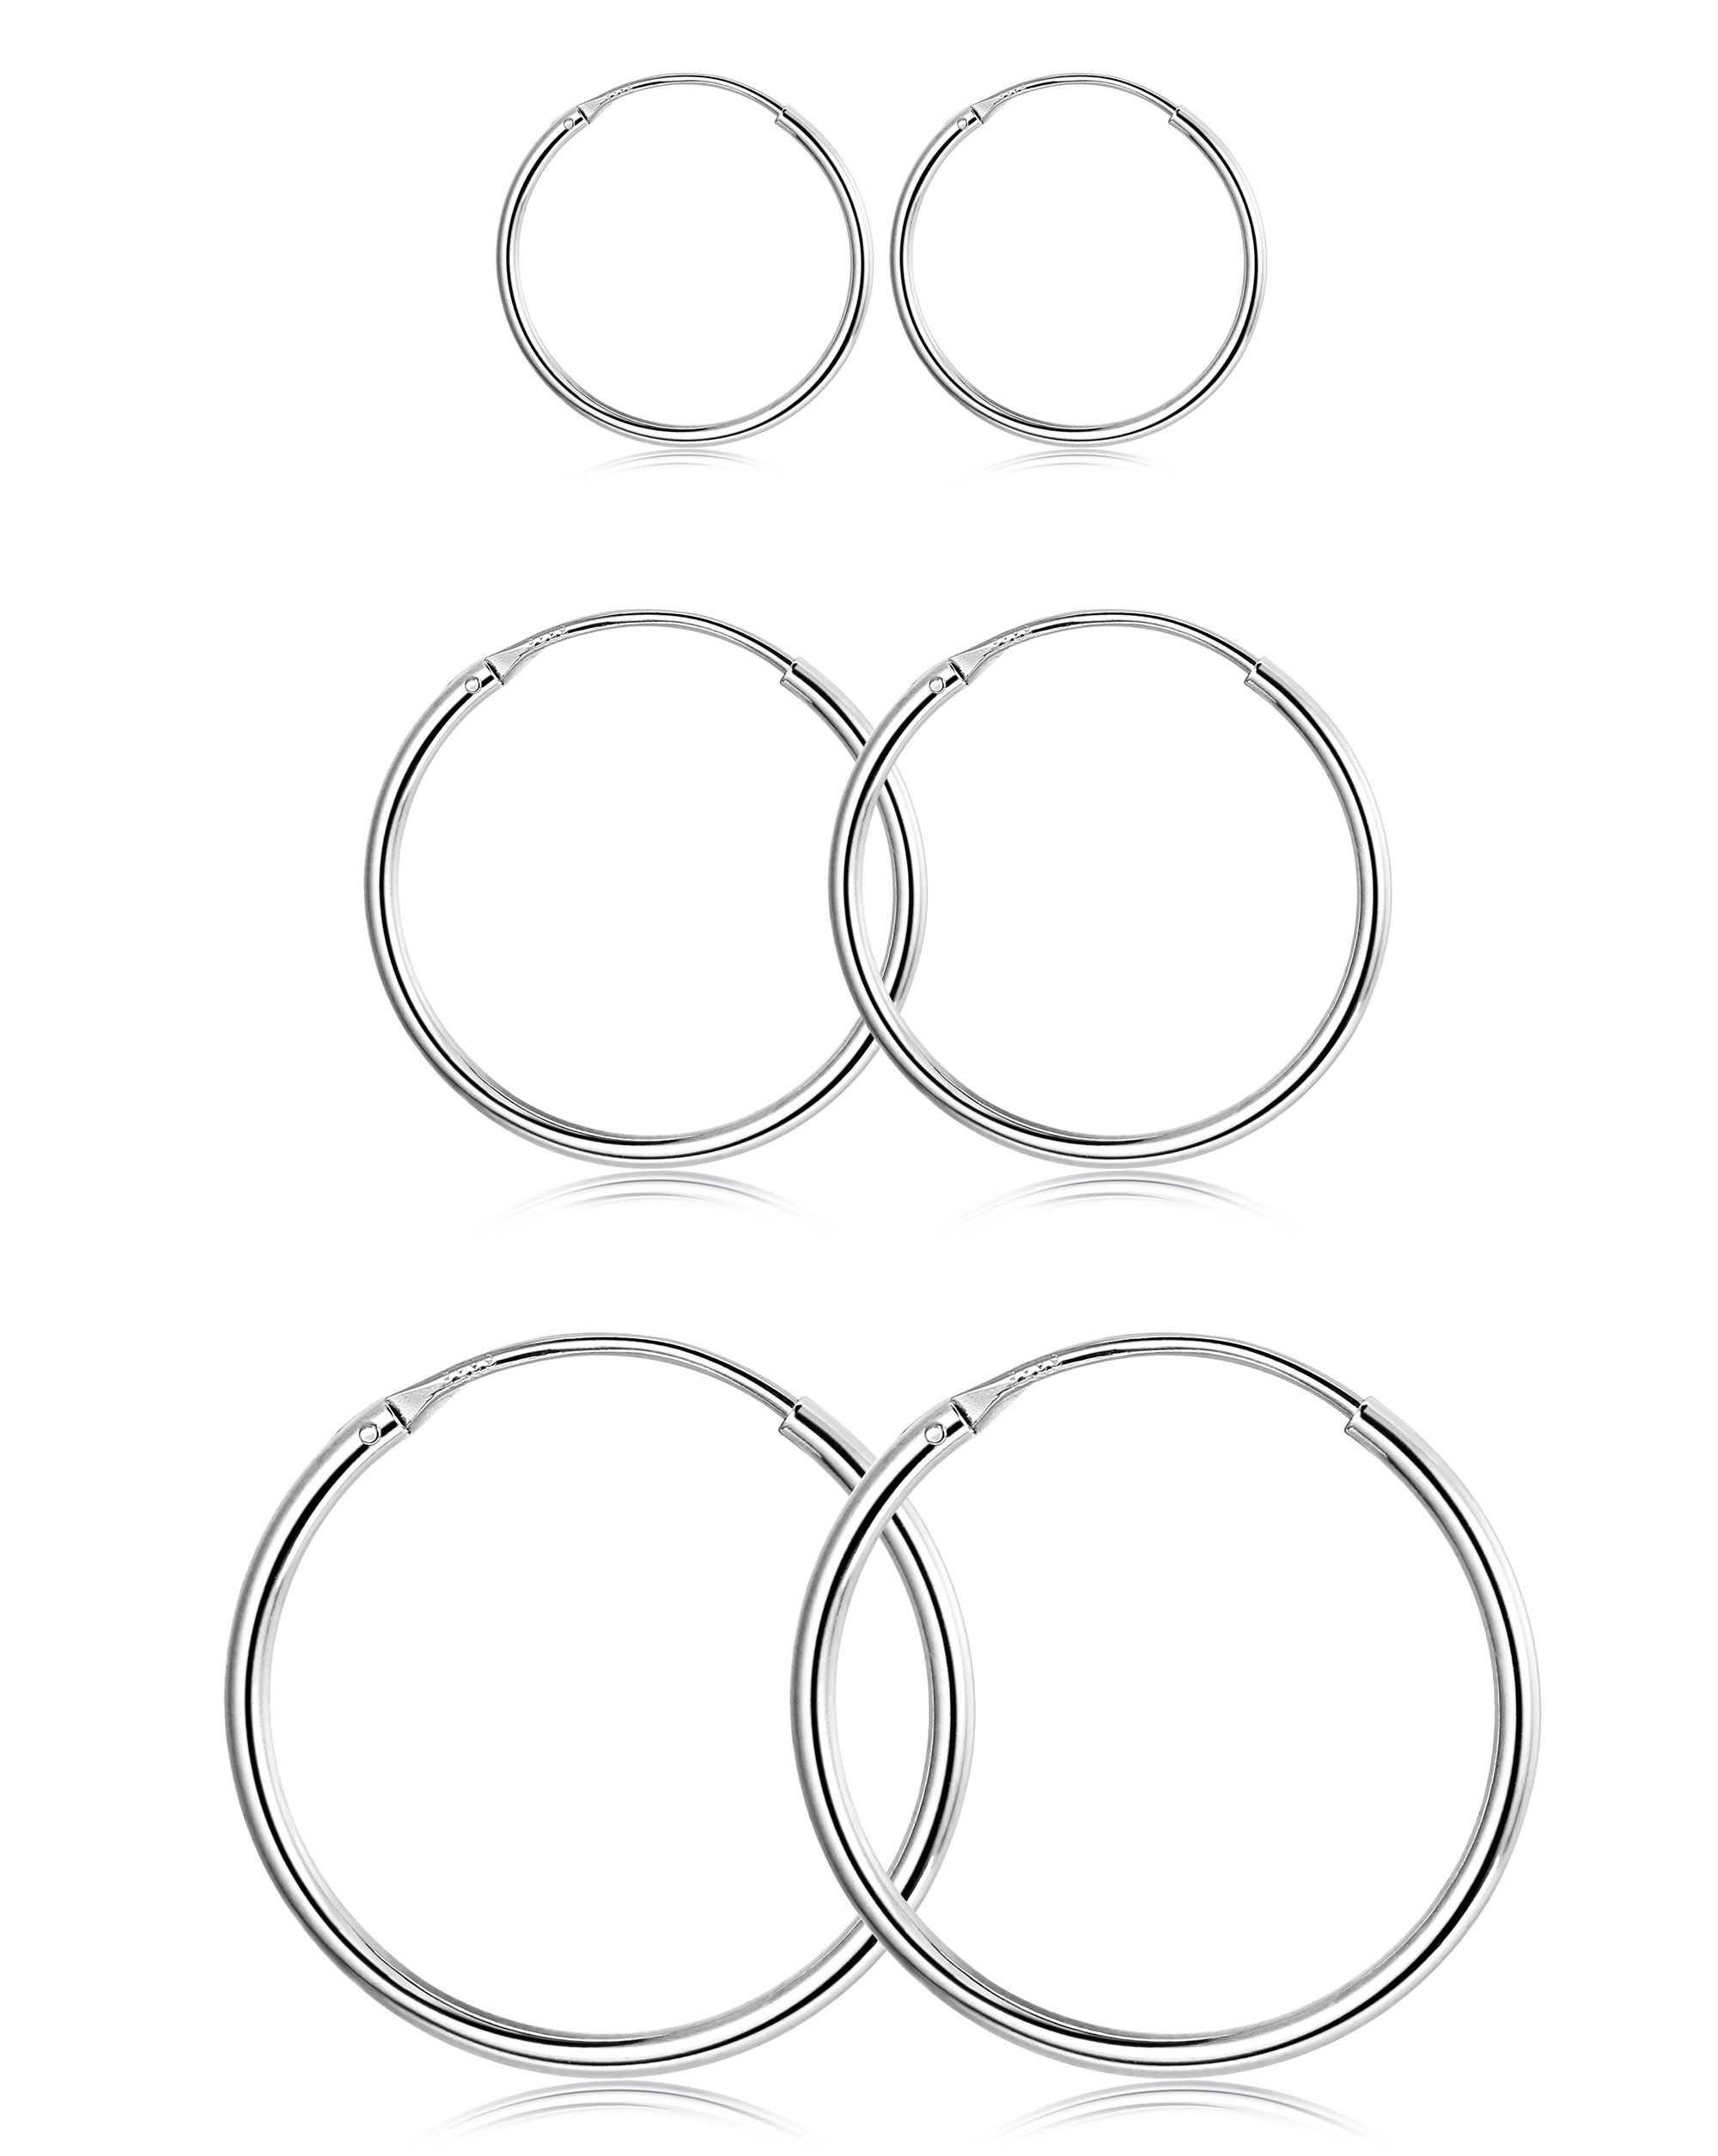 FUNRUN JEWELRY 3 Pairs Sterling Silver Hoop Earrings for Women Men Round Earrings Set 10-40MM (A: Platinum-Plated 3 Pairs: 10MM/15MM/20MM)